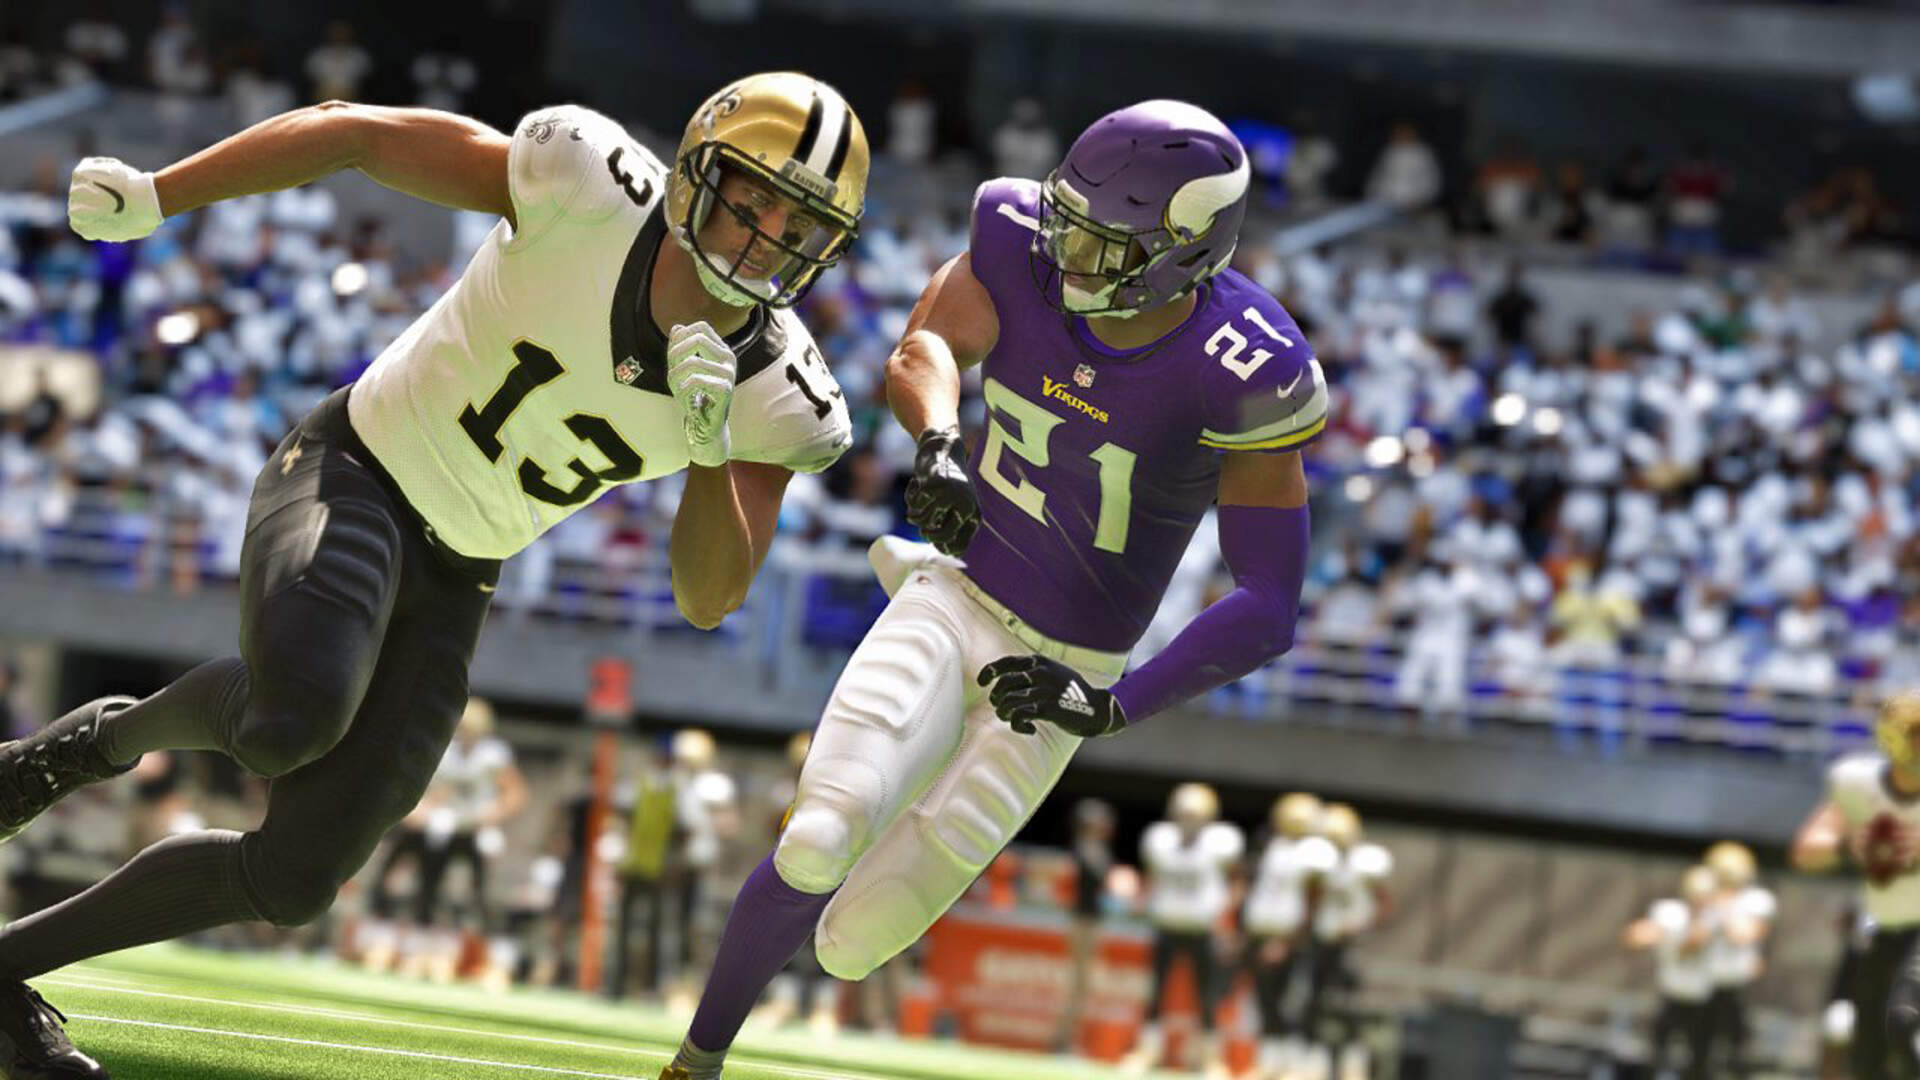 Madden 21 is Planning Its September Title Update for the Start of the NFL Season